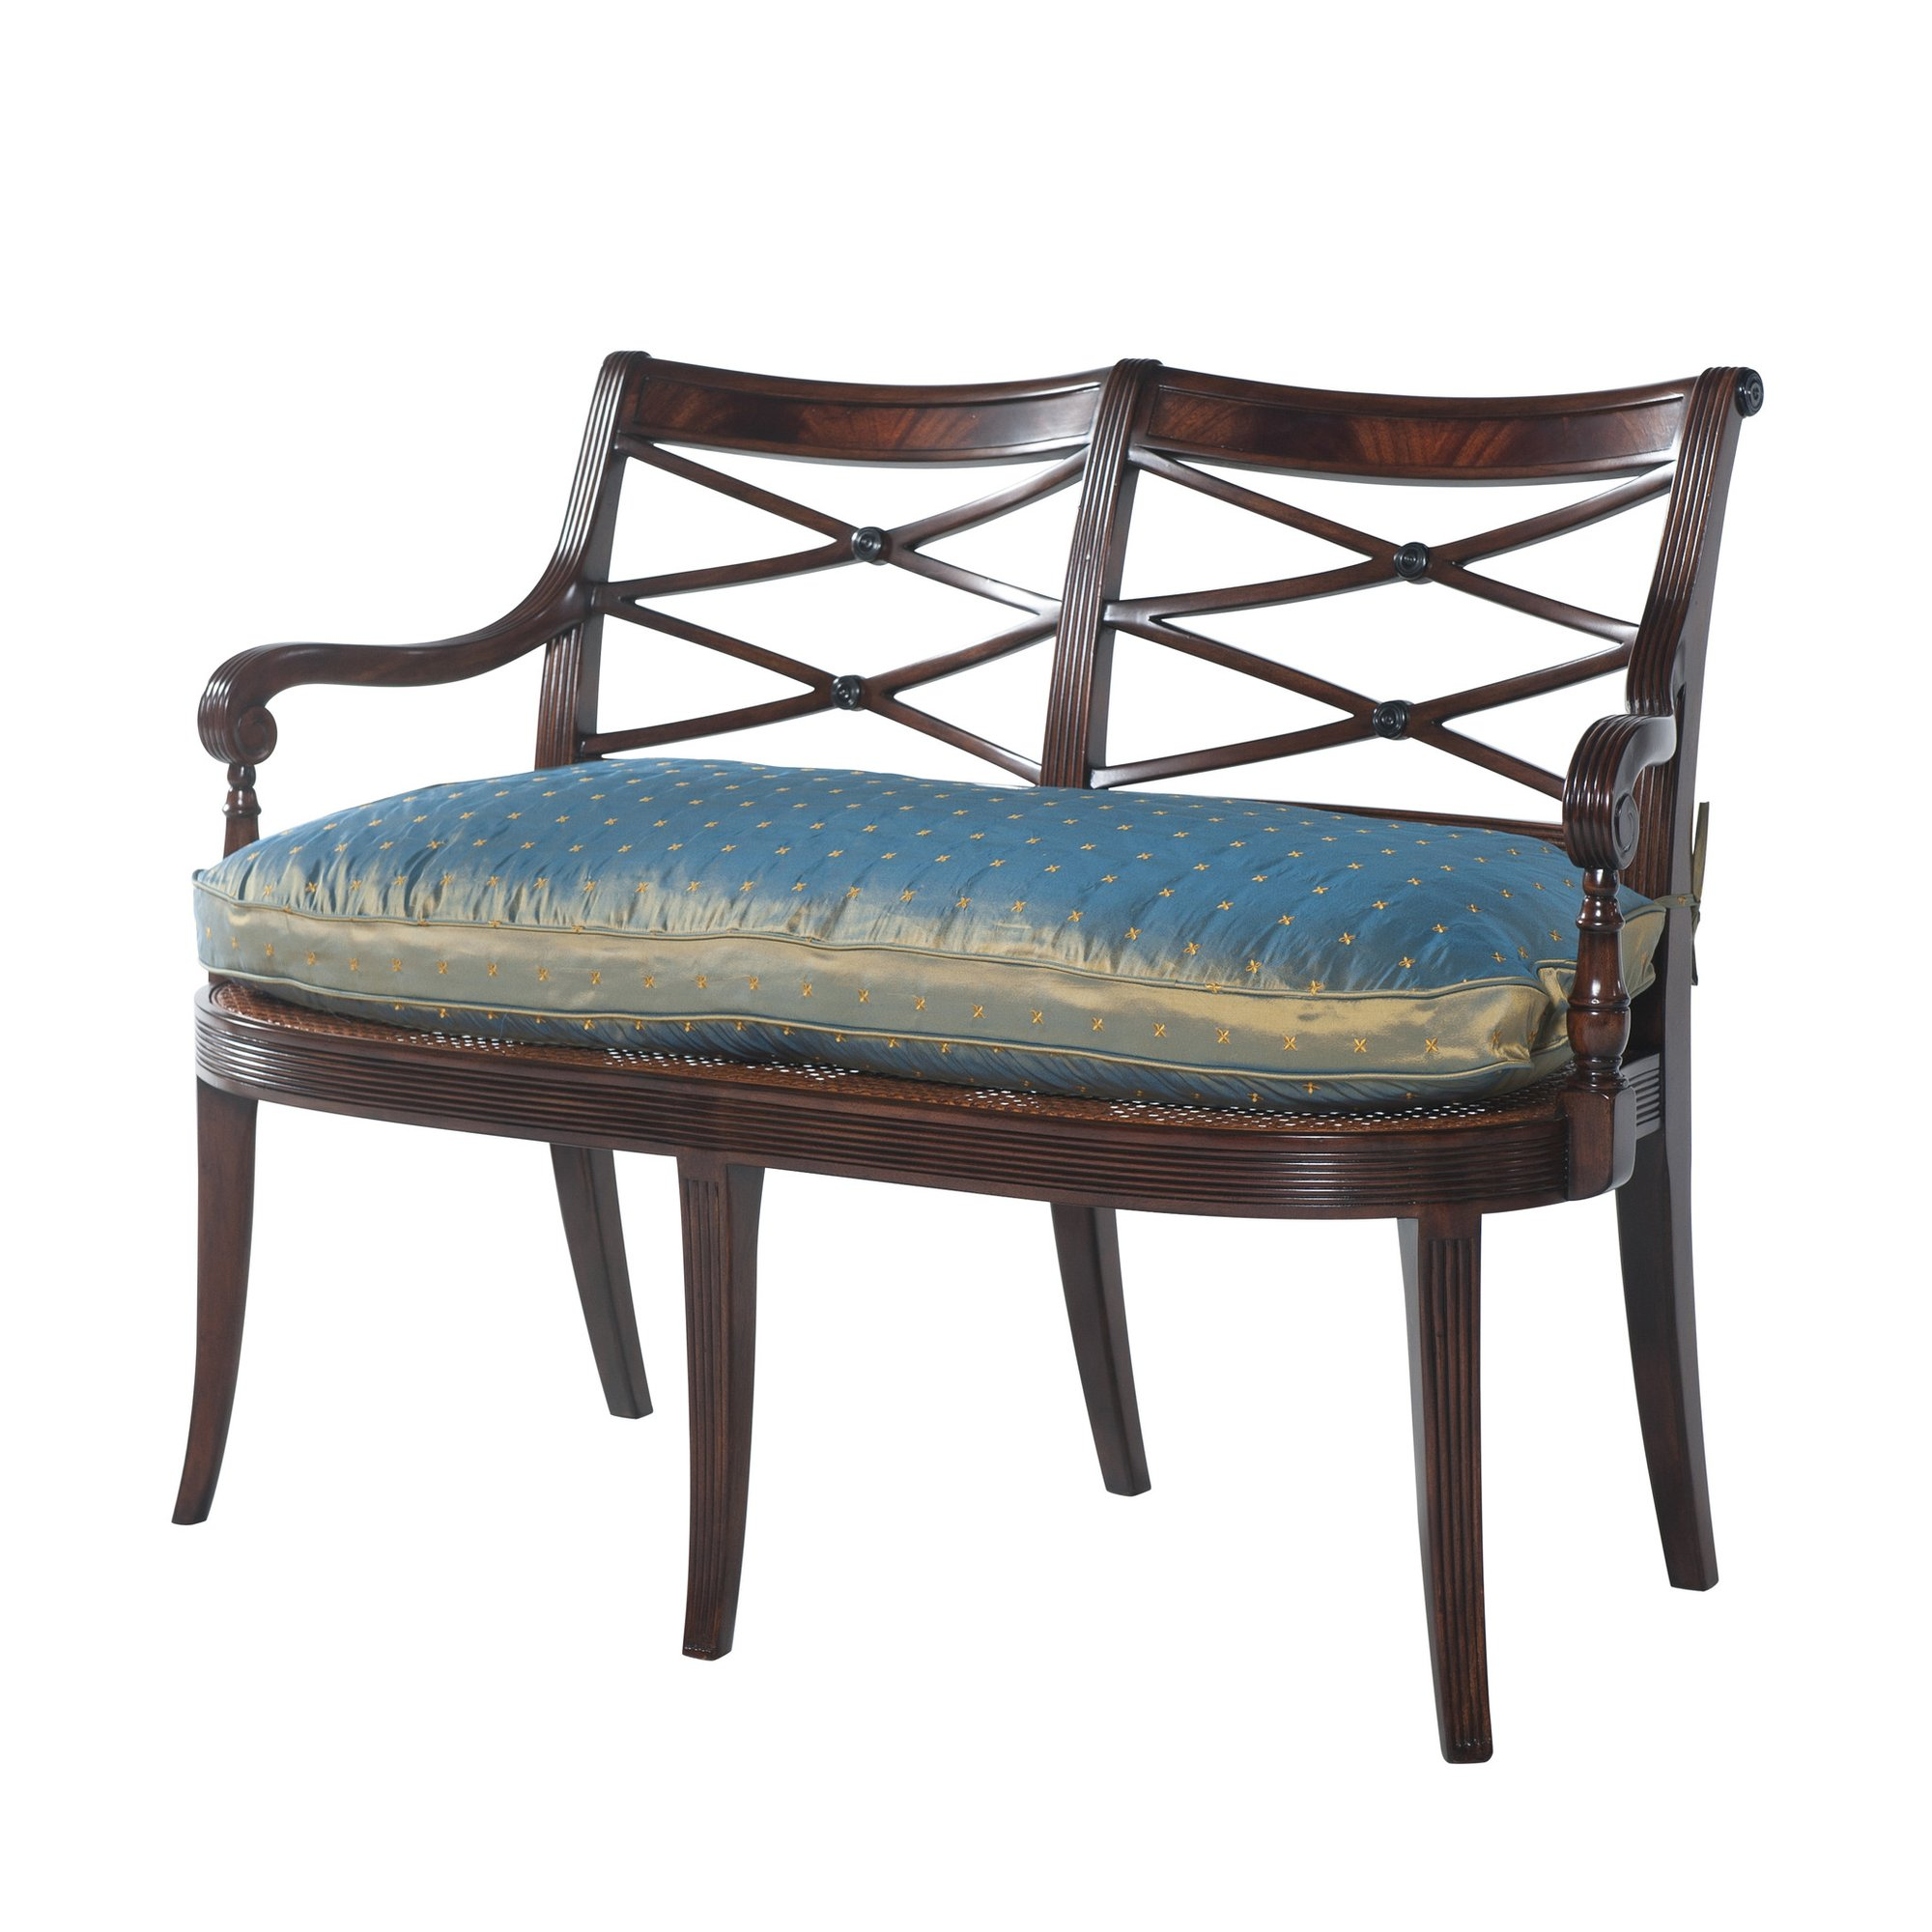 The blue silk pillow on this double chairback settee can add a touch of color to a space.  This is another piece available at English Georgian America's website.